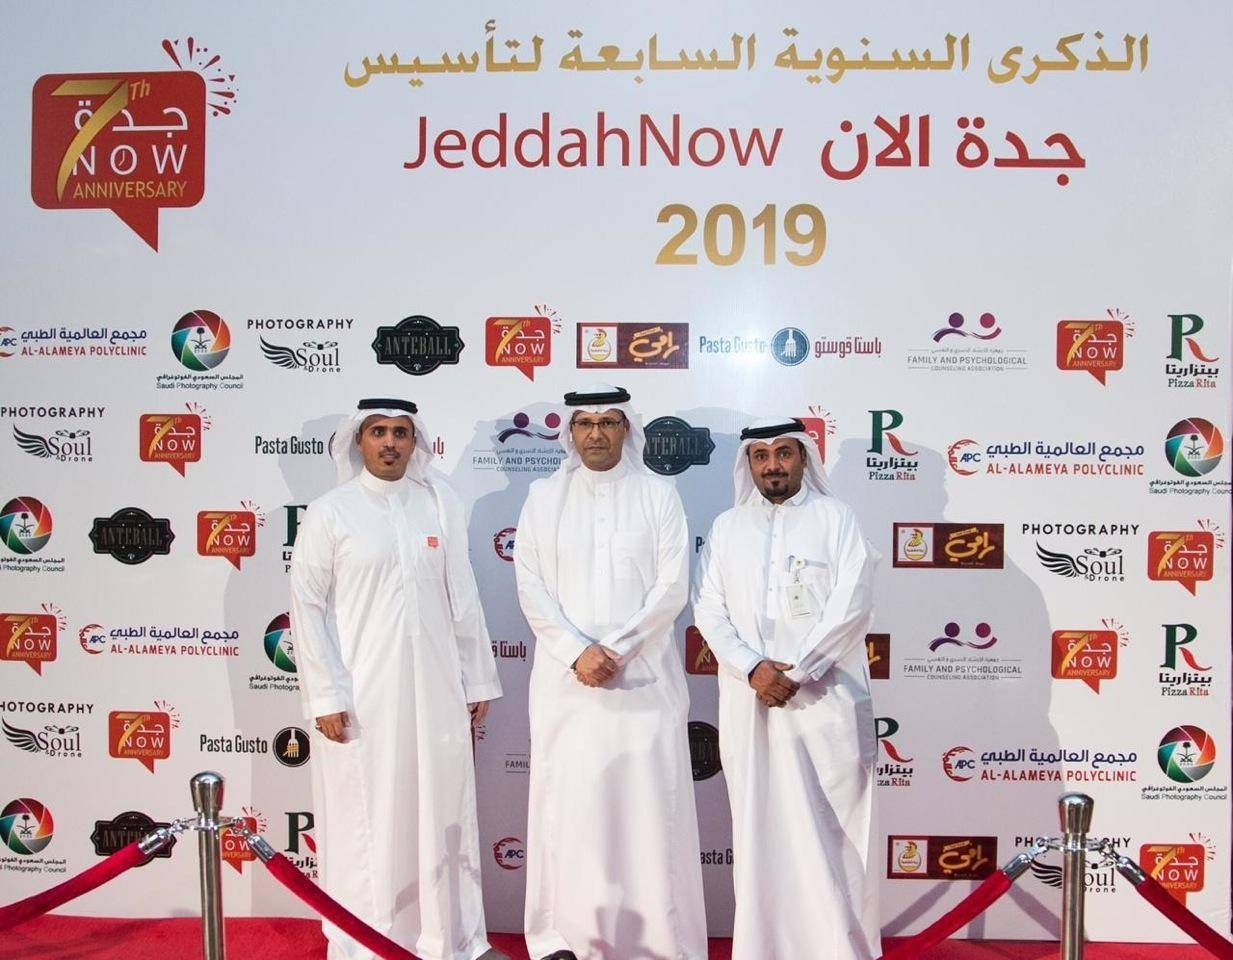 The Jeddah Now account was completely revamped in December 2012. — Courtesy photo